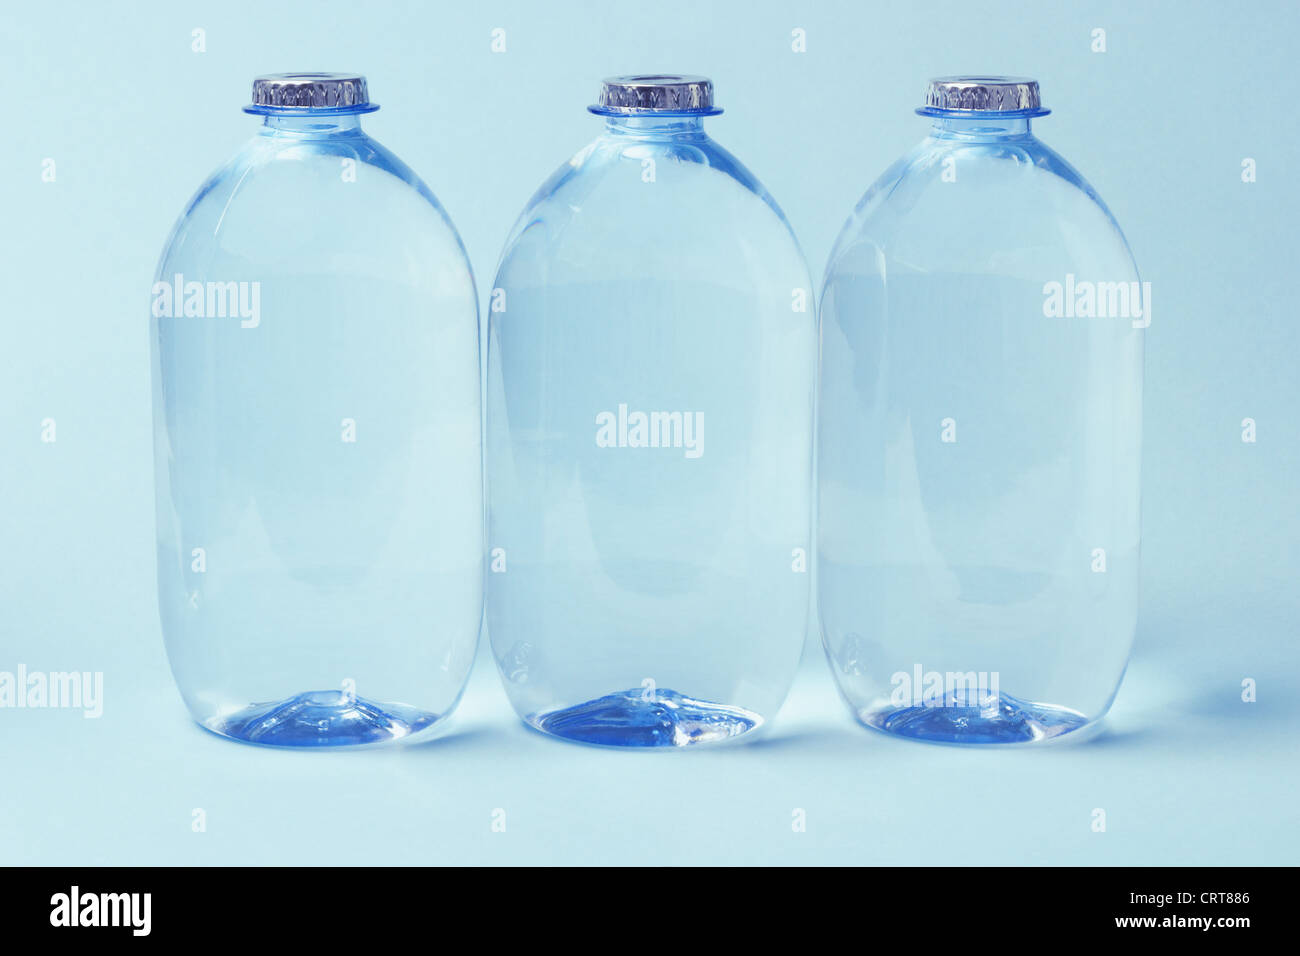 Three Plastic Bottles of Mineral Water on Blue Background - Stock Image